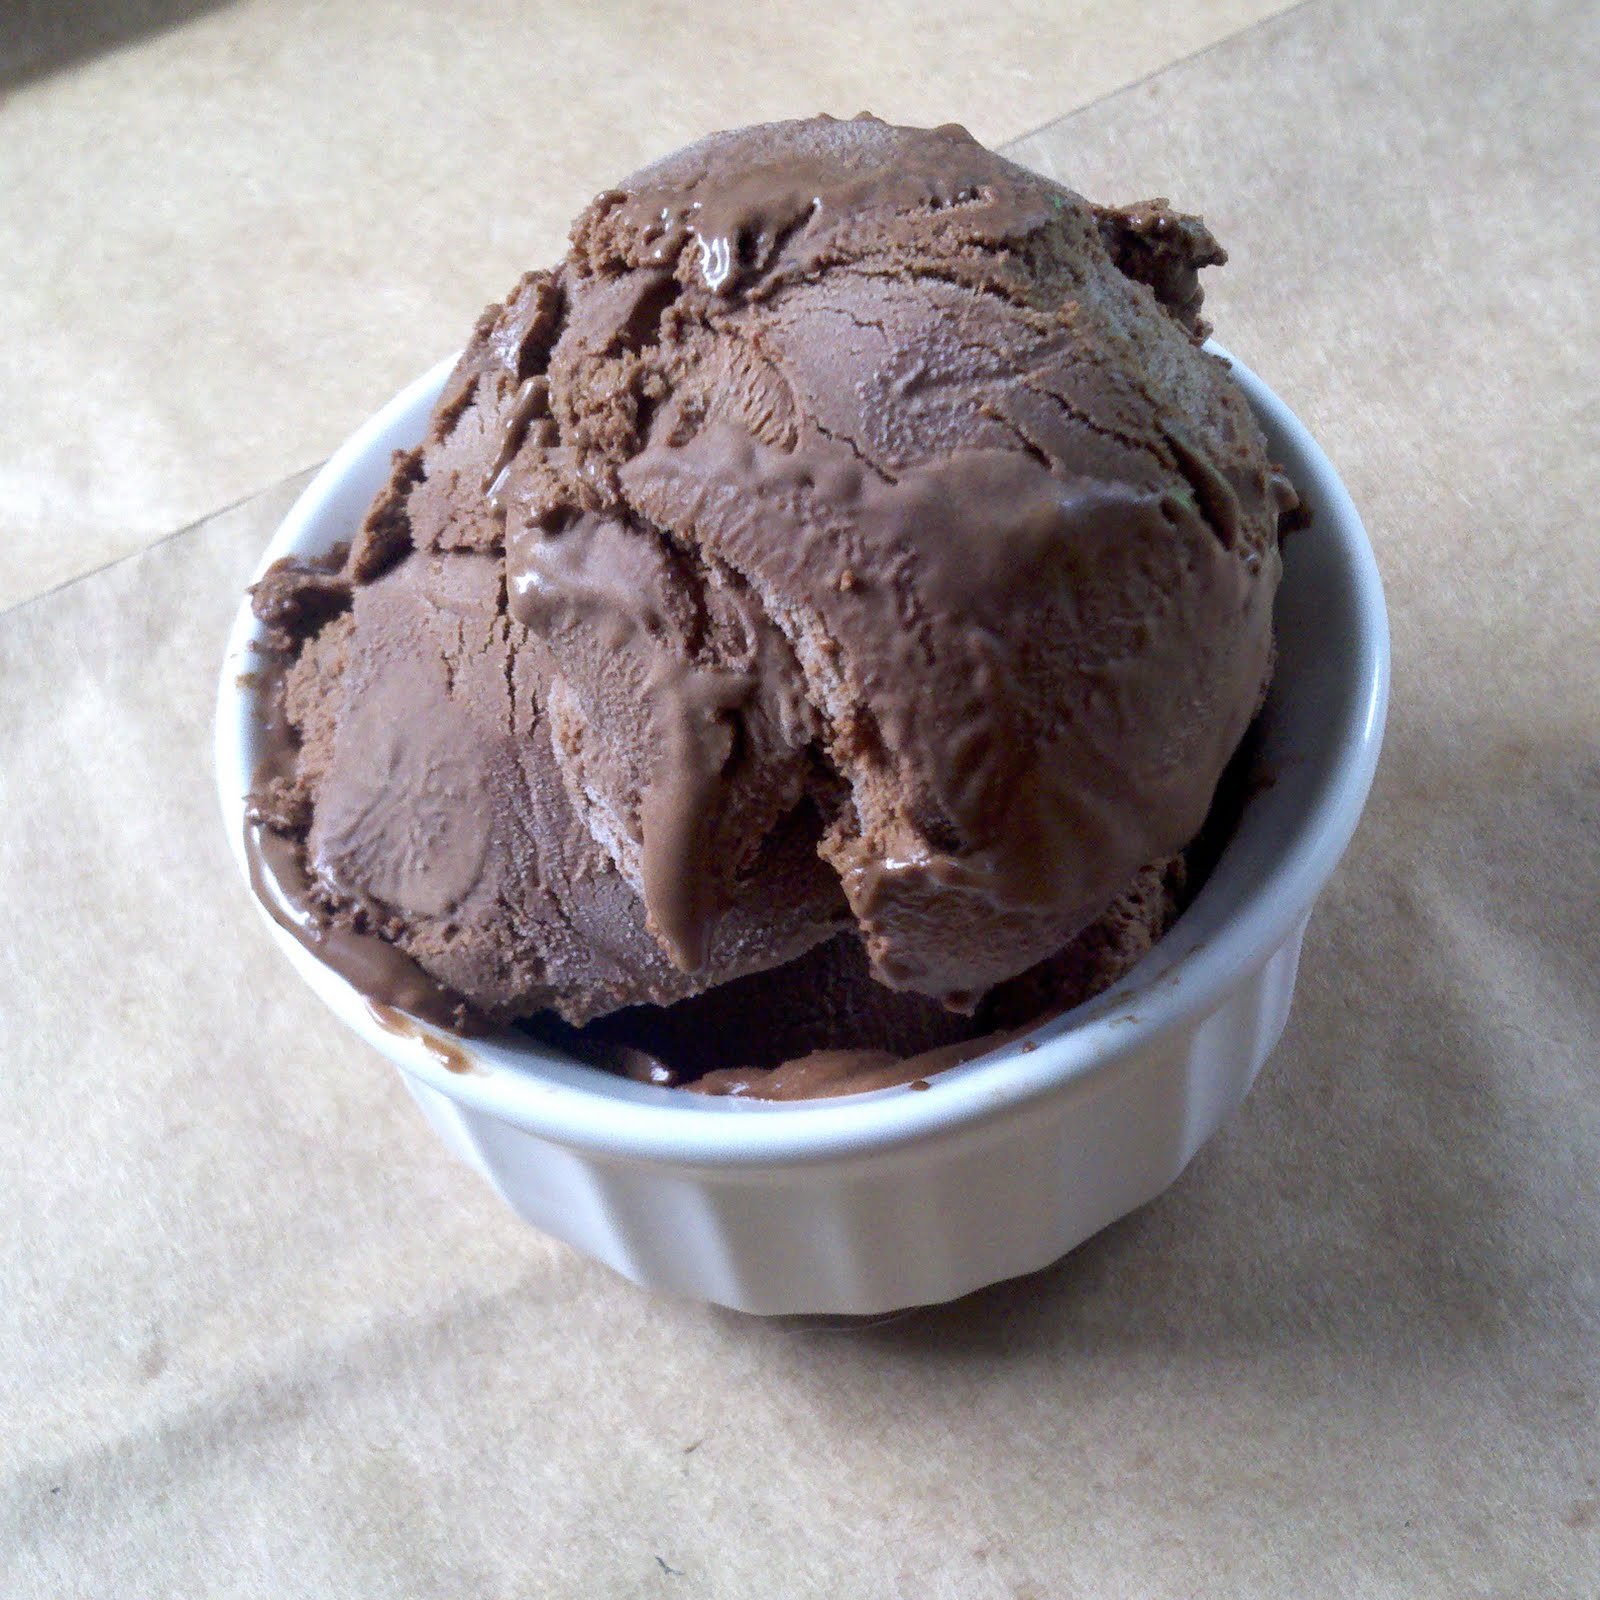 Spicy chocolate ice cream